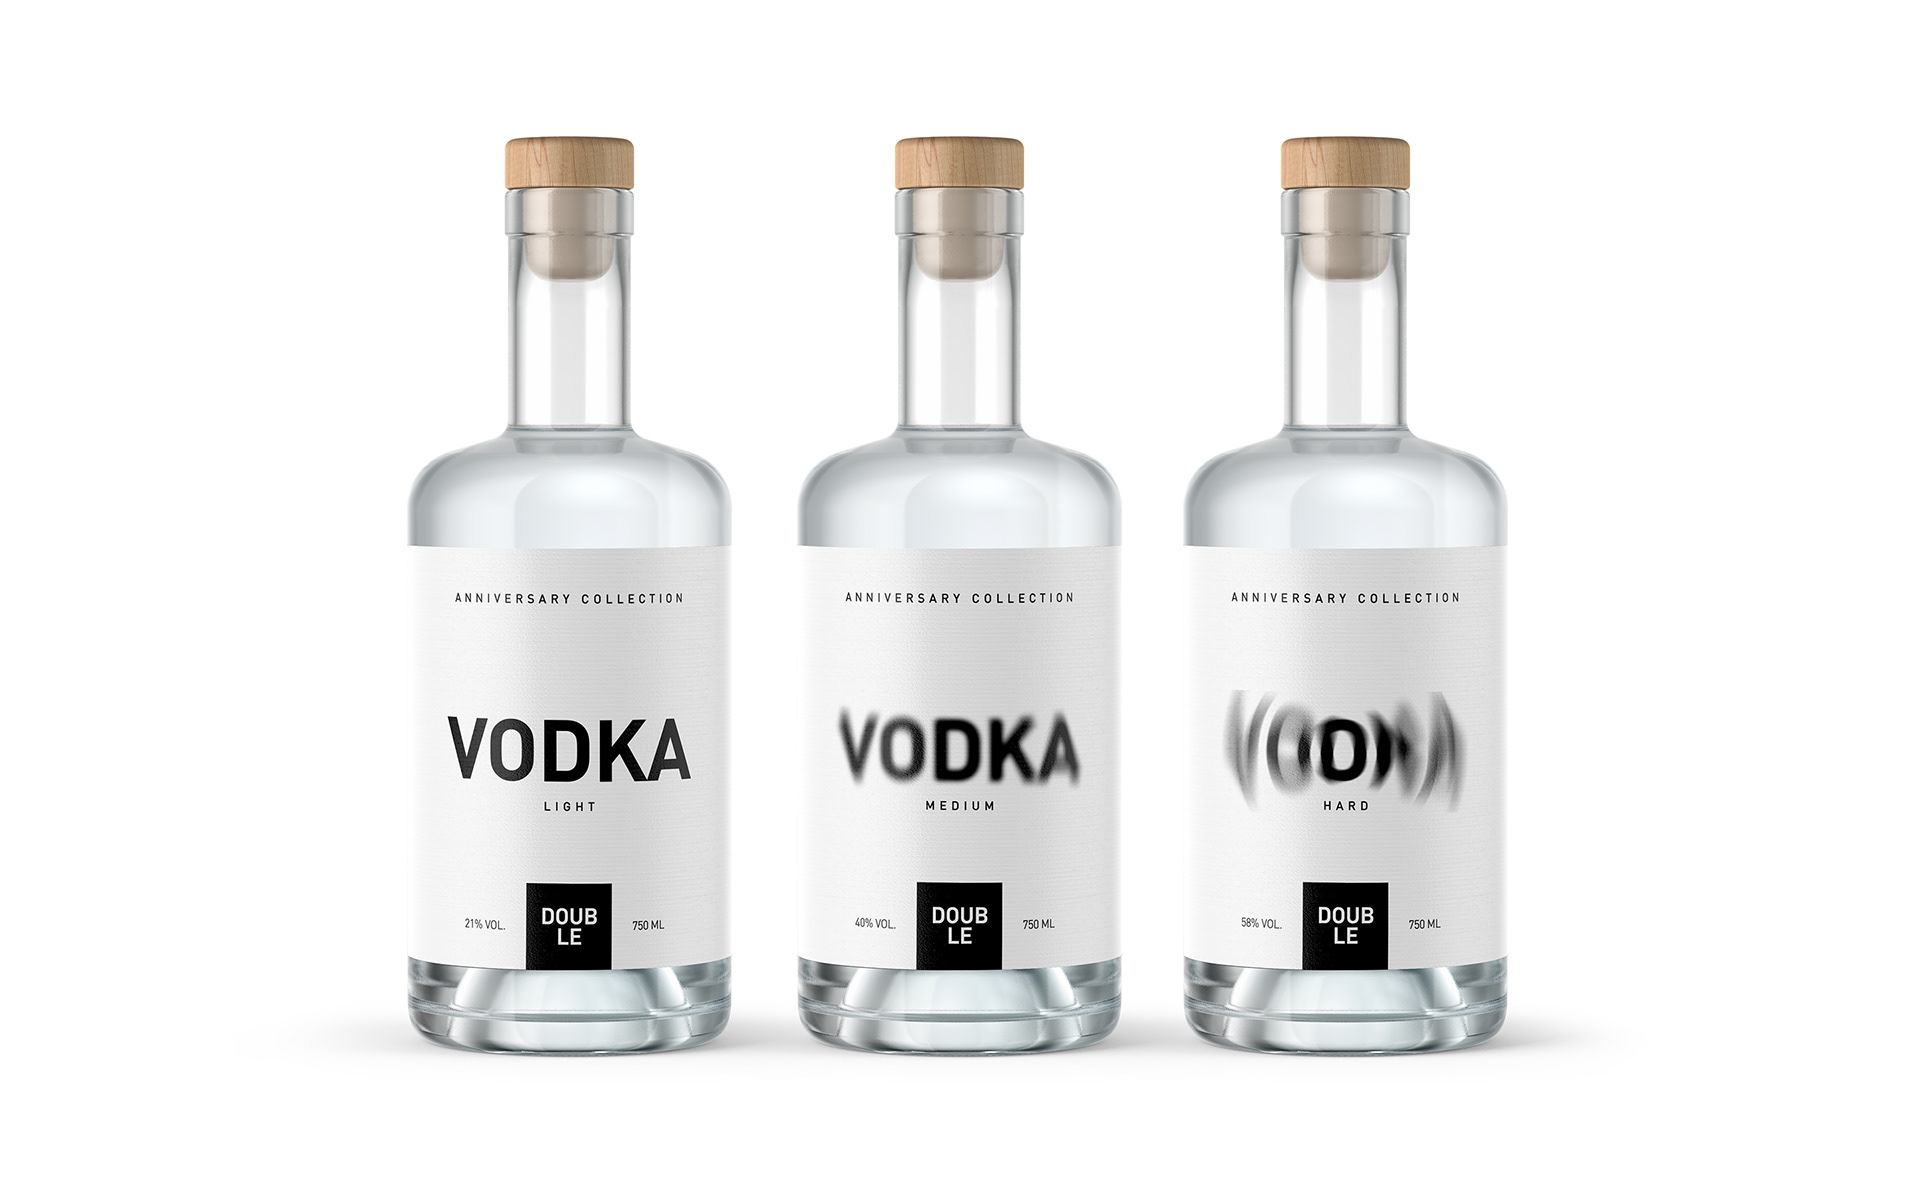 Rahim Ismayil Design Concept for Double Vodka Anniversary Collection